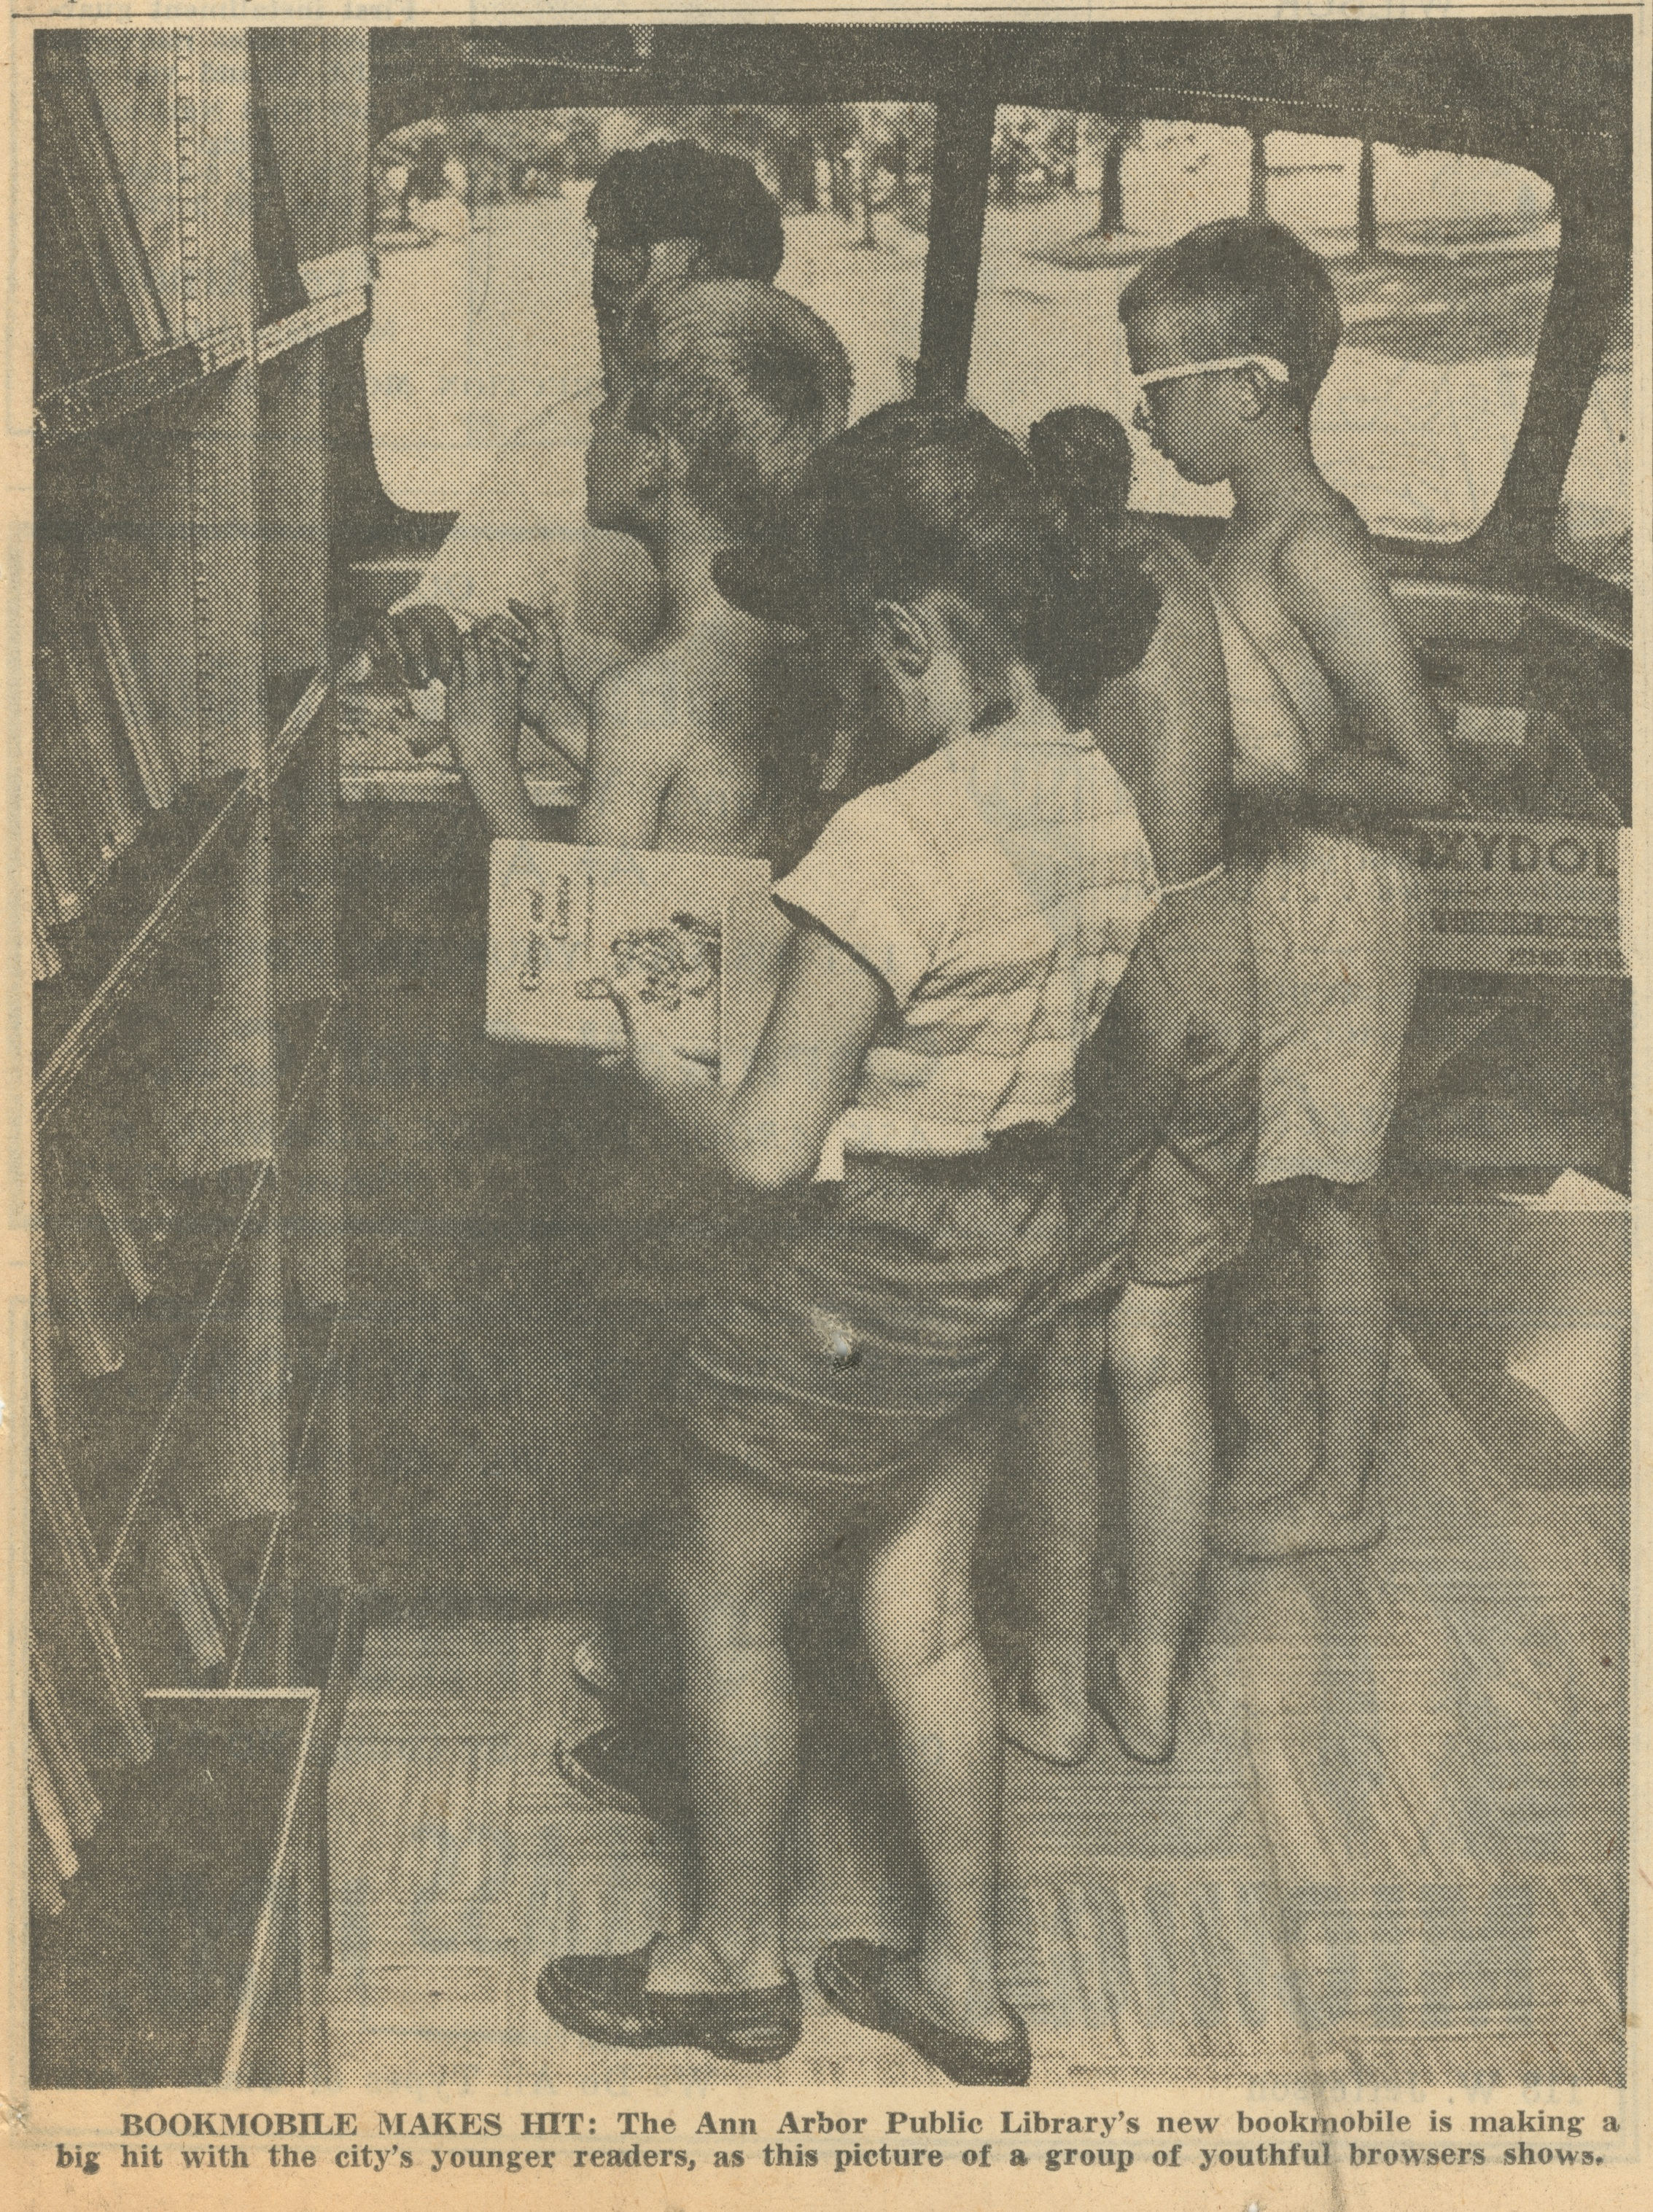 Bookmobile Makes Hit image